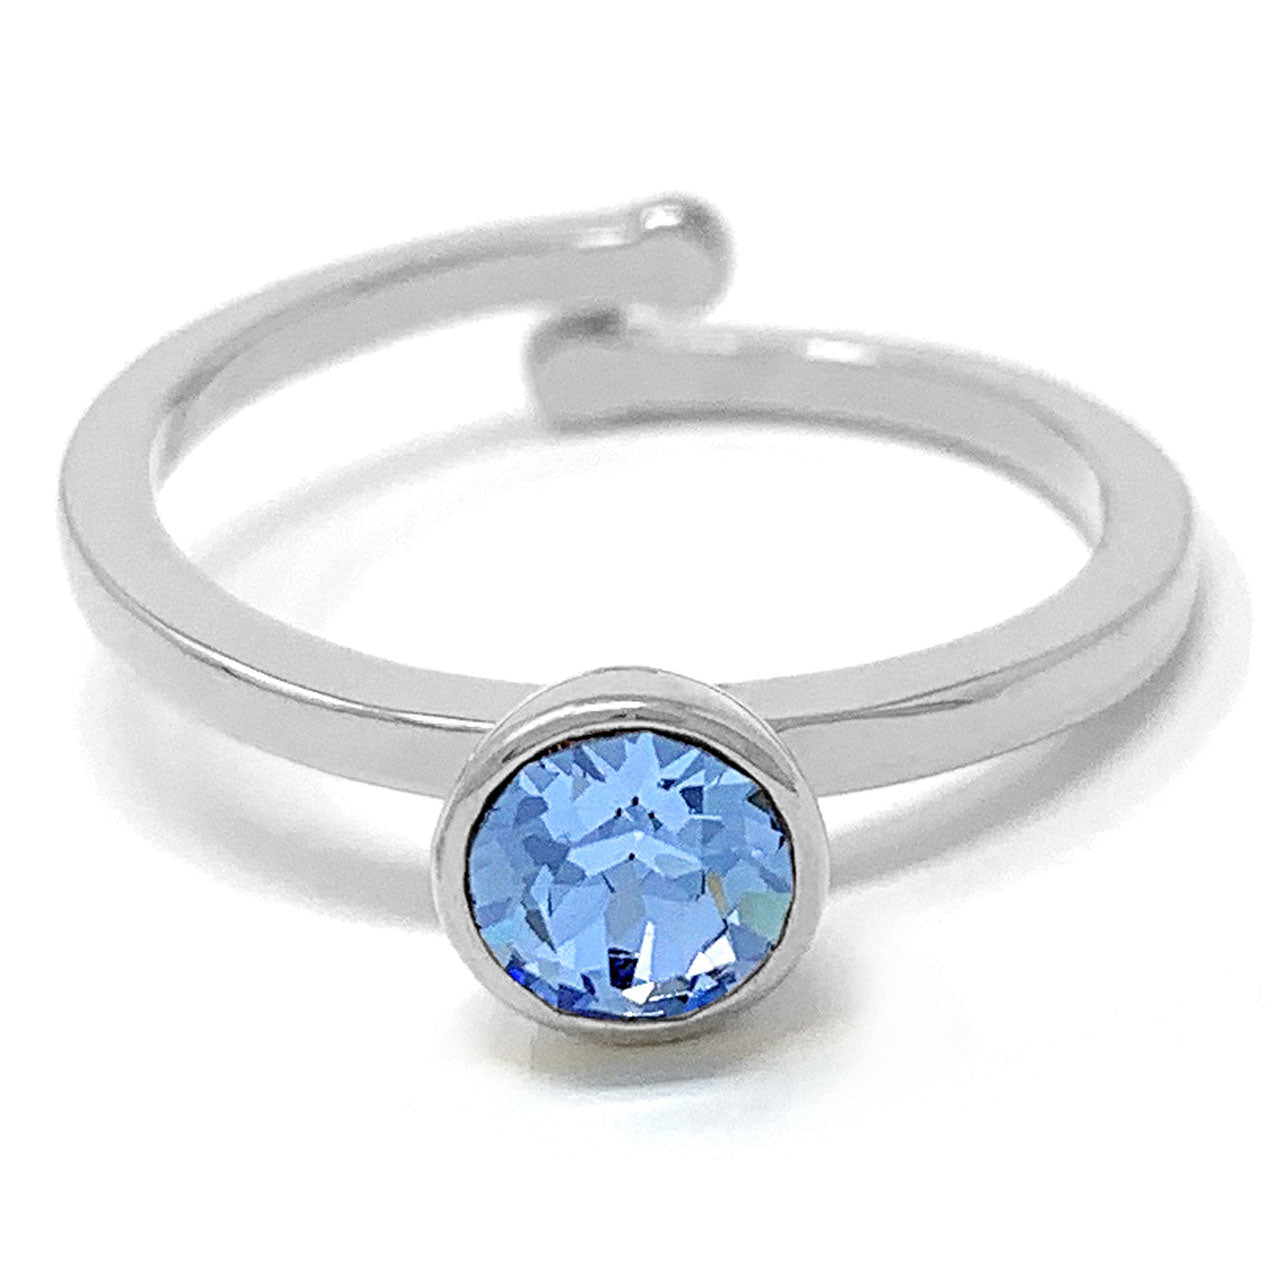 Harley Adjustable Ring with Blue Light Sapphire Round Crystals from Swarovski Silver Toned Rhodium Plated - Ed Heart